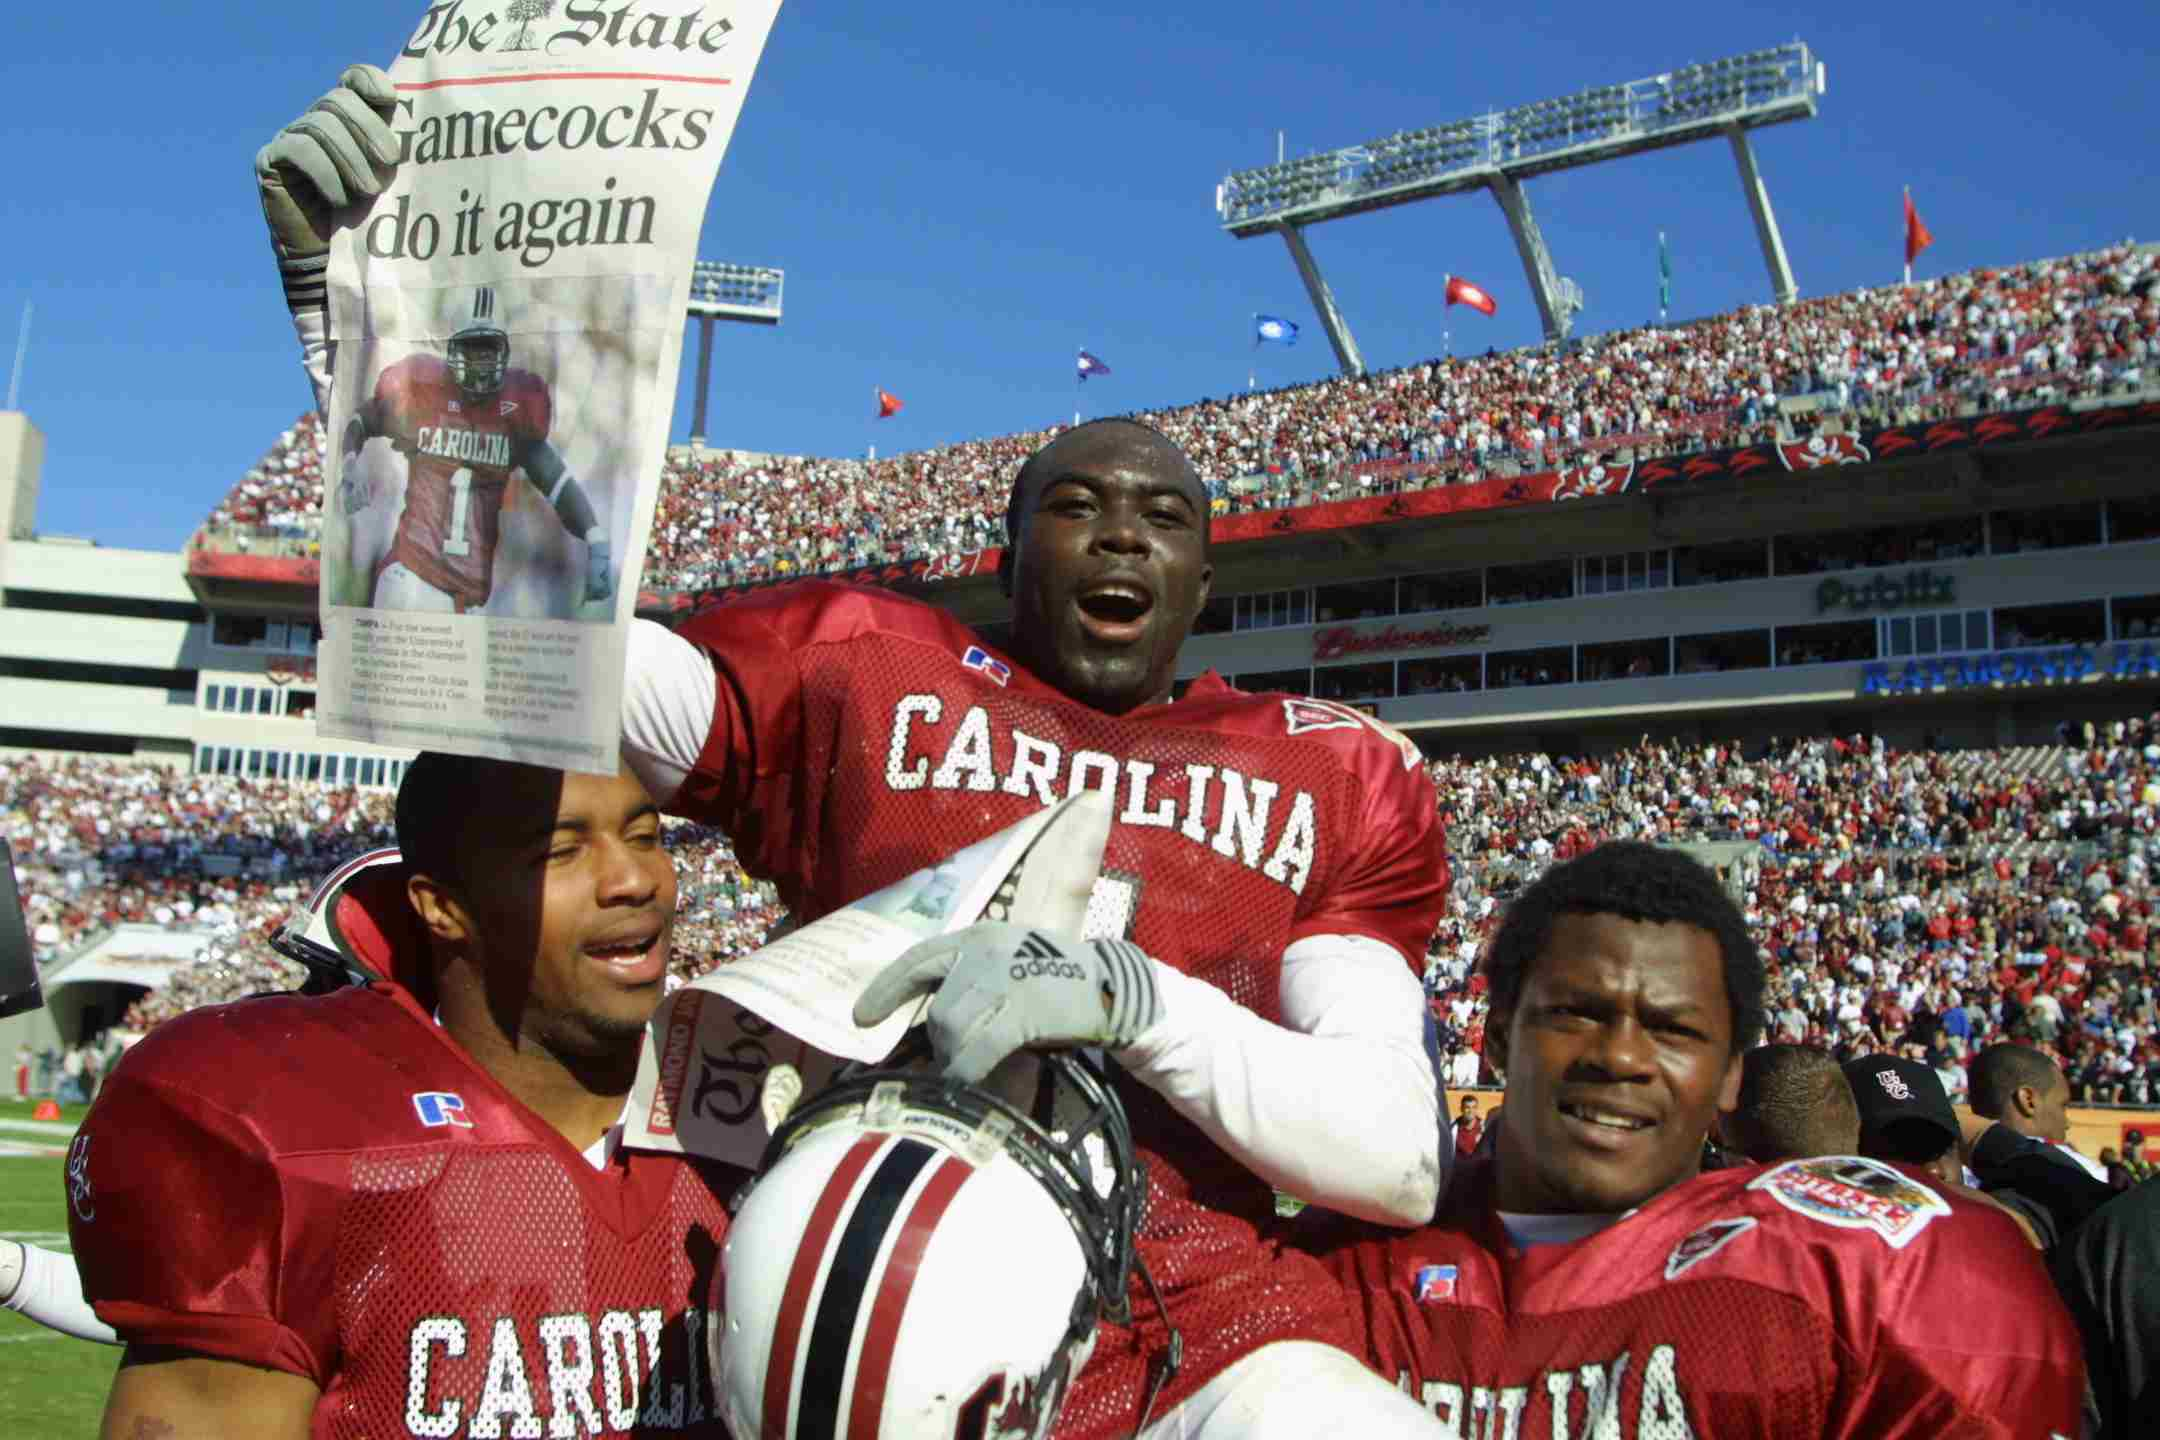 South Carolina player Antoine Nesmith, #1, is carried off the field by teammates after beating Ohio State 31-28 in the Outback Bowl